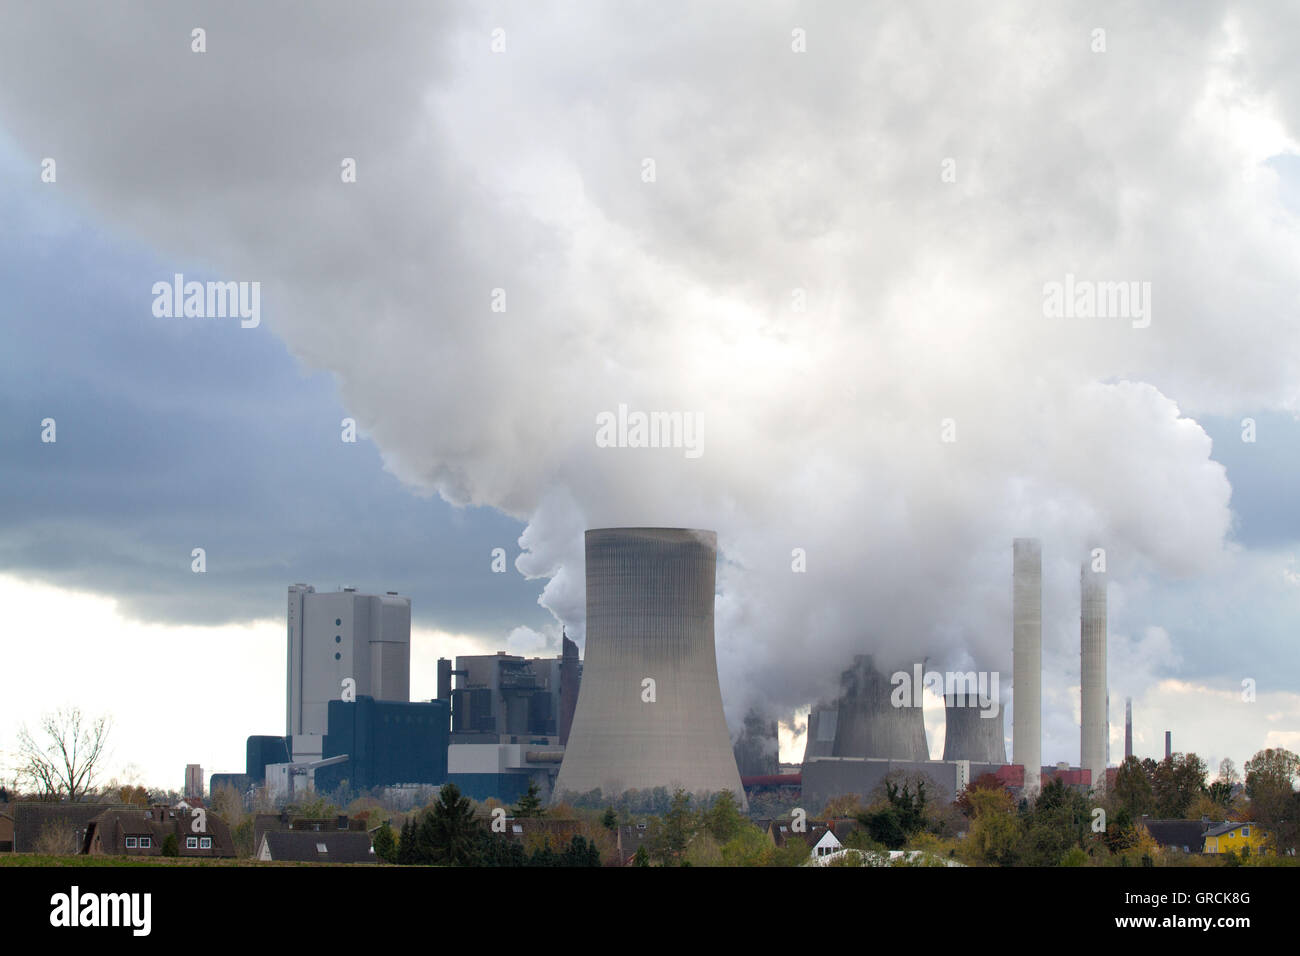 Coal-Fired Power Plant In Nrw - Stock Image